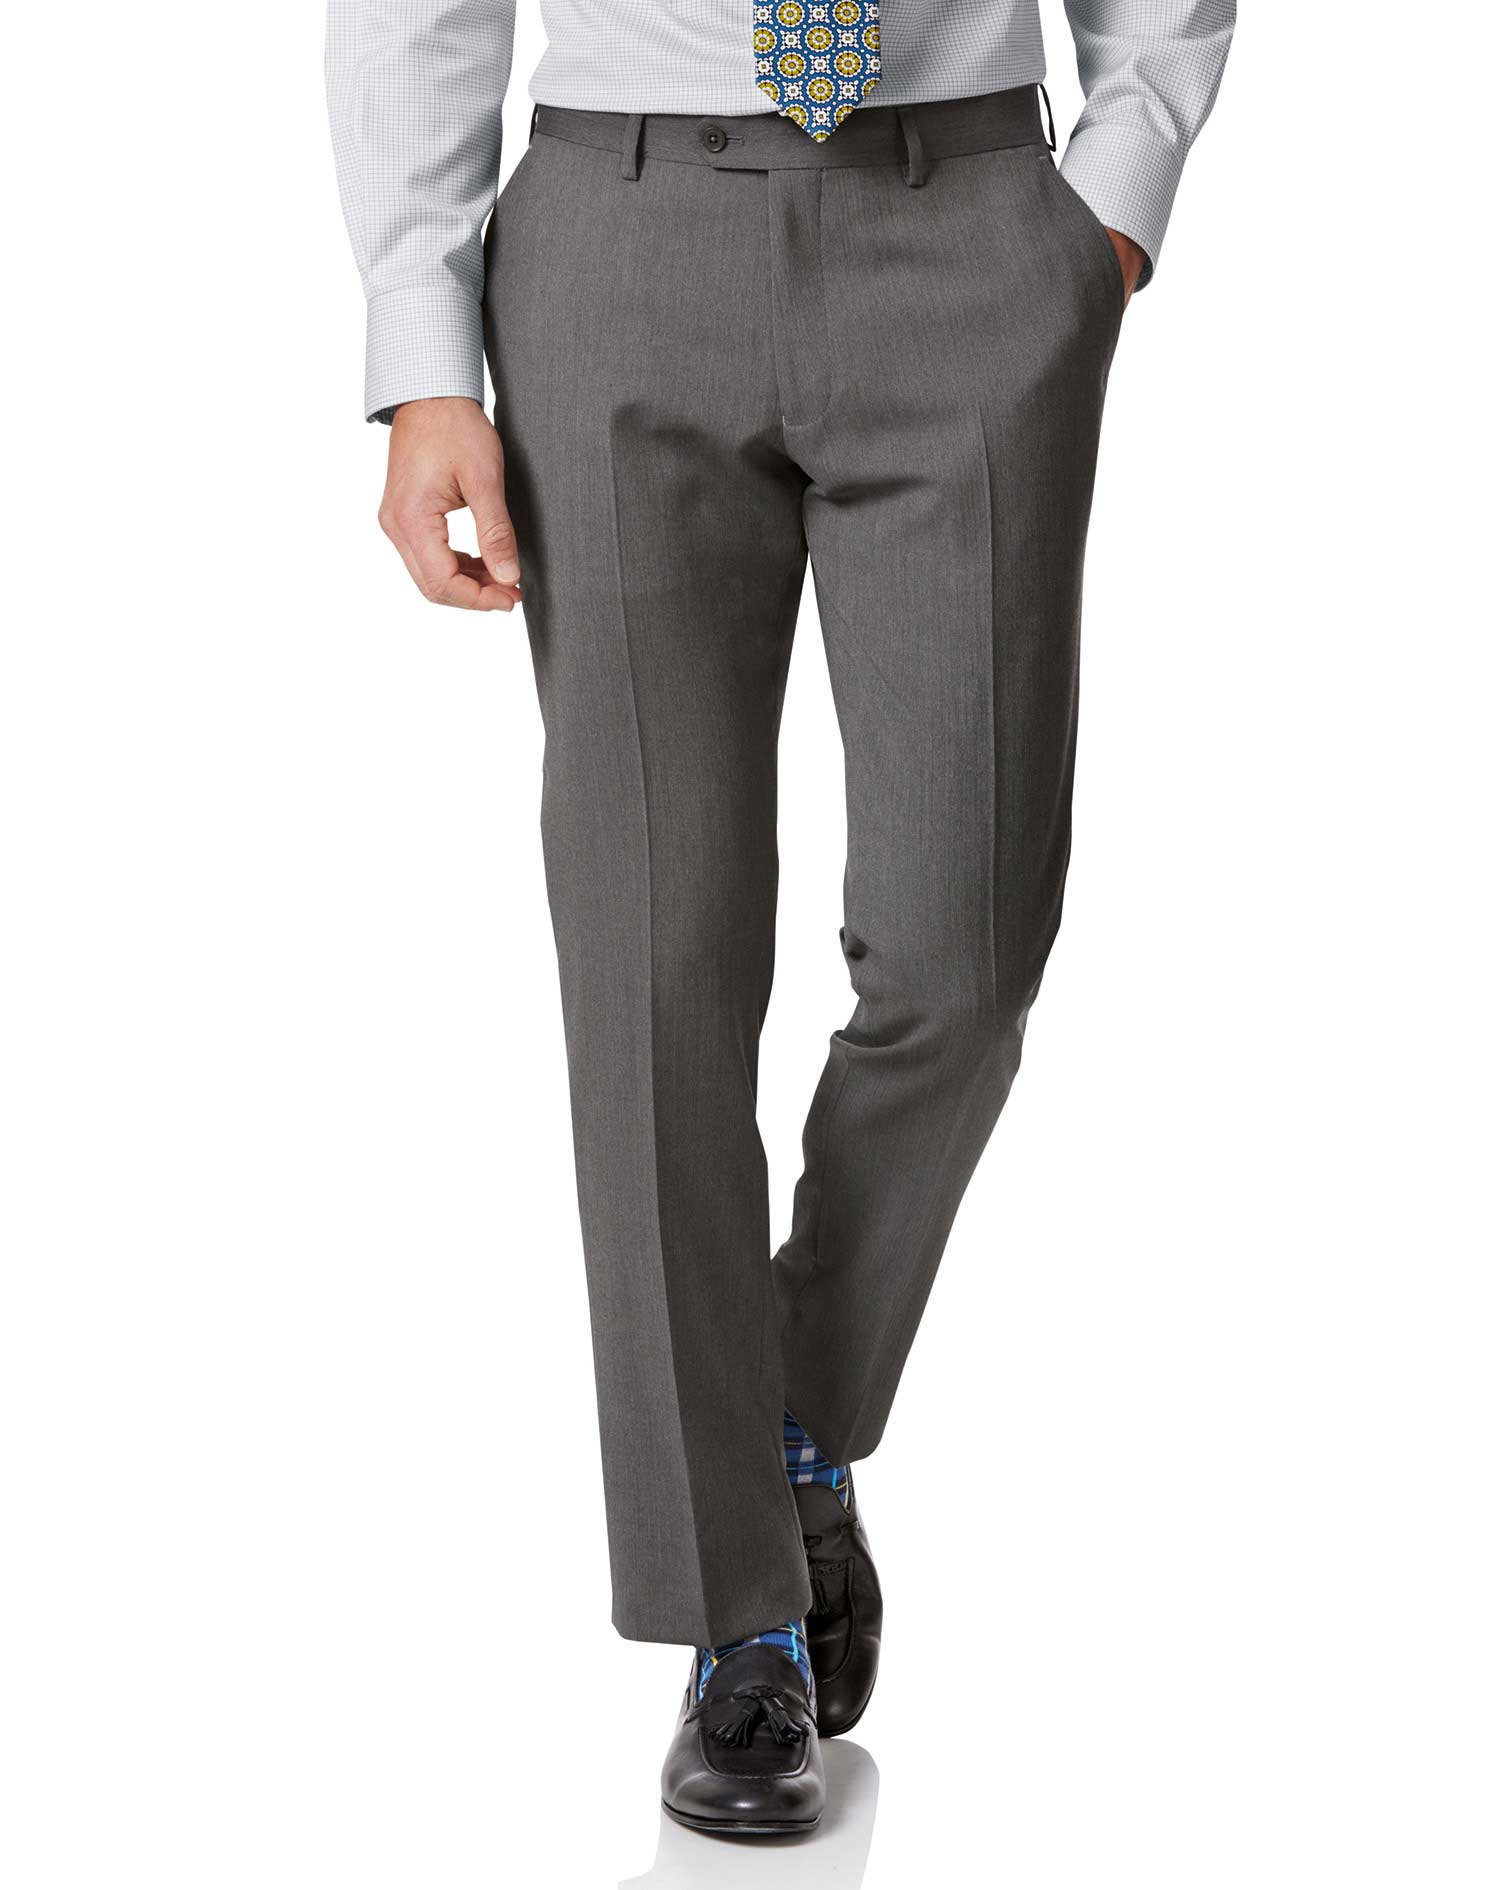 Light Grey Slim Fit Herringbone Business Suit Trousers Size W34 L38 by Charles Tyrwhitt